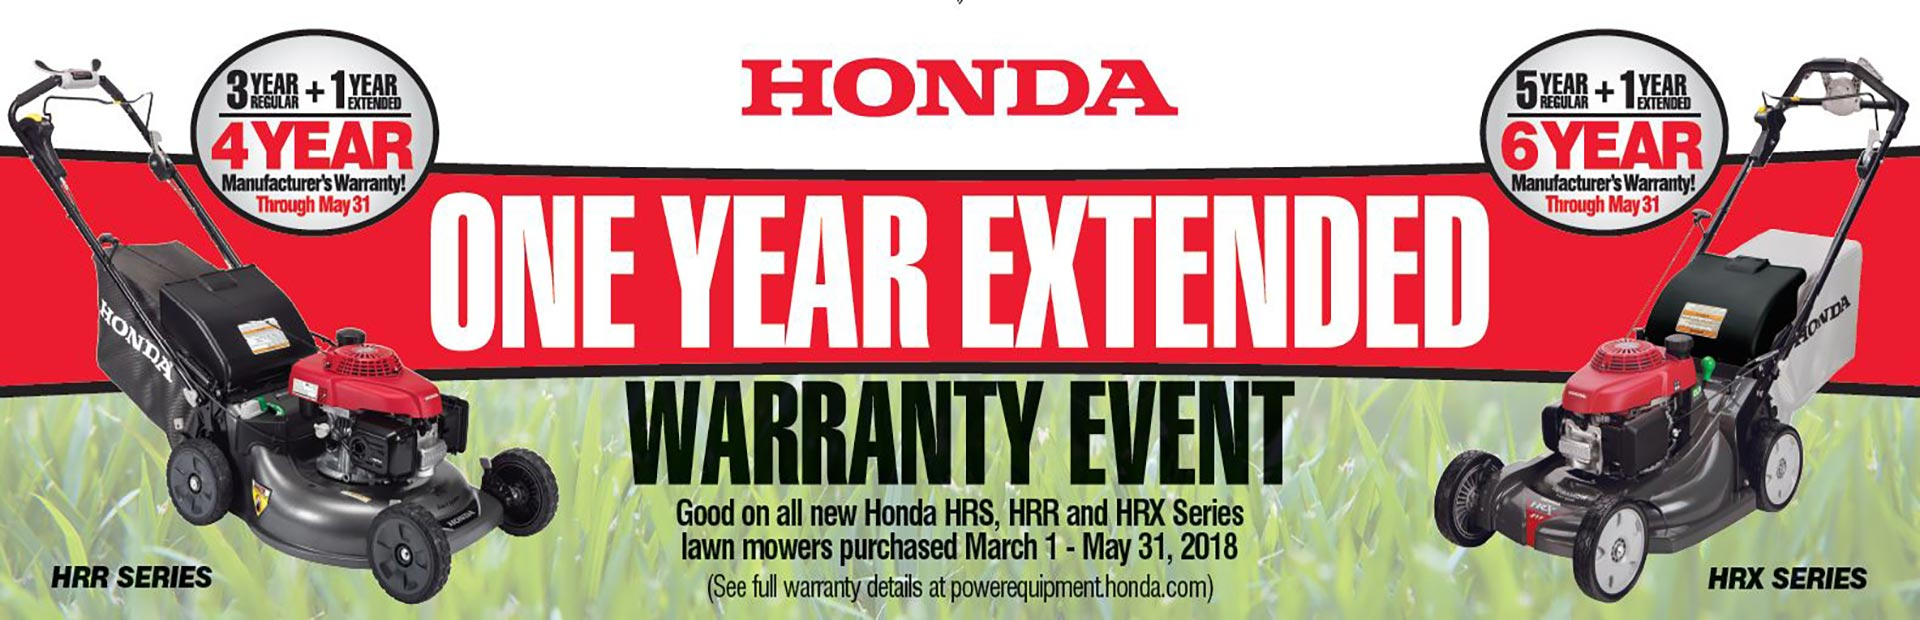 Honda One Year Extended Warranty Event. Good on all New Honda HRS, HRR and HRX Series. March 1 - May 31, 2018